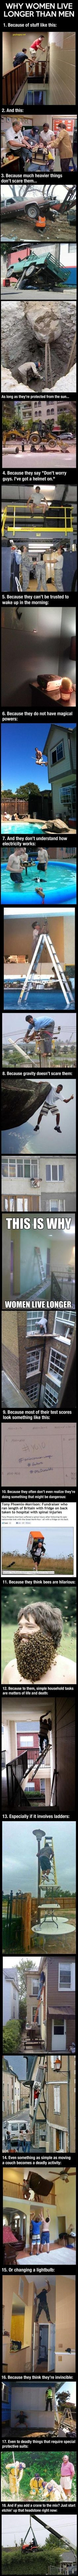 Funny Memes About This is Why Women Live Longer Than Men #ad